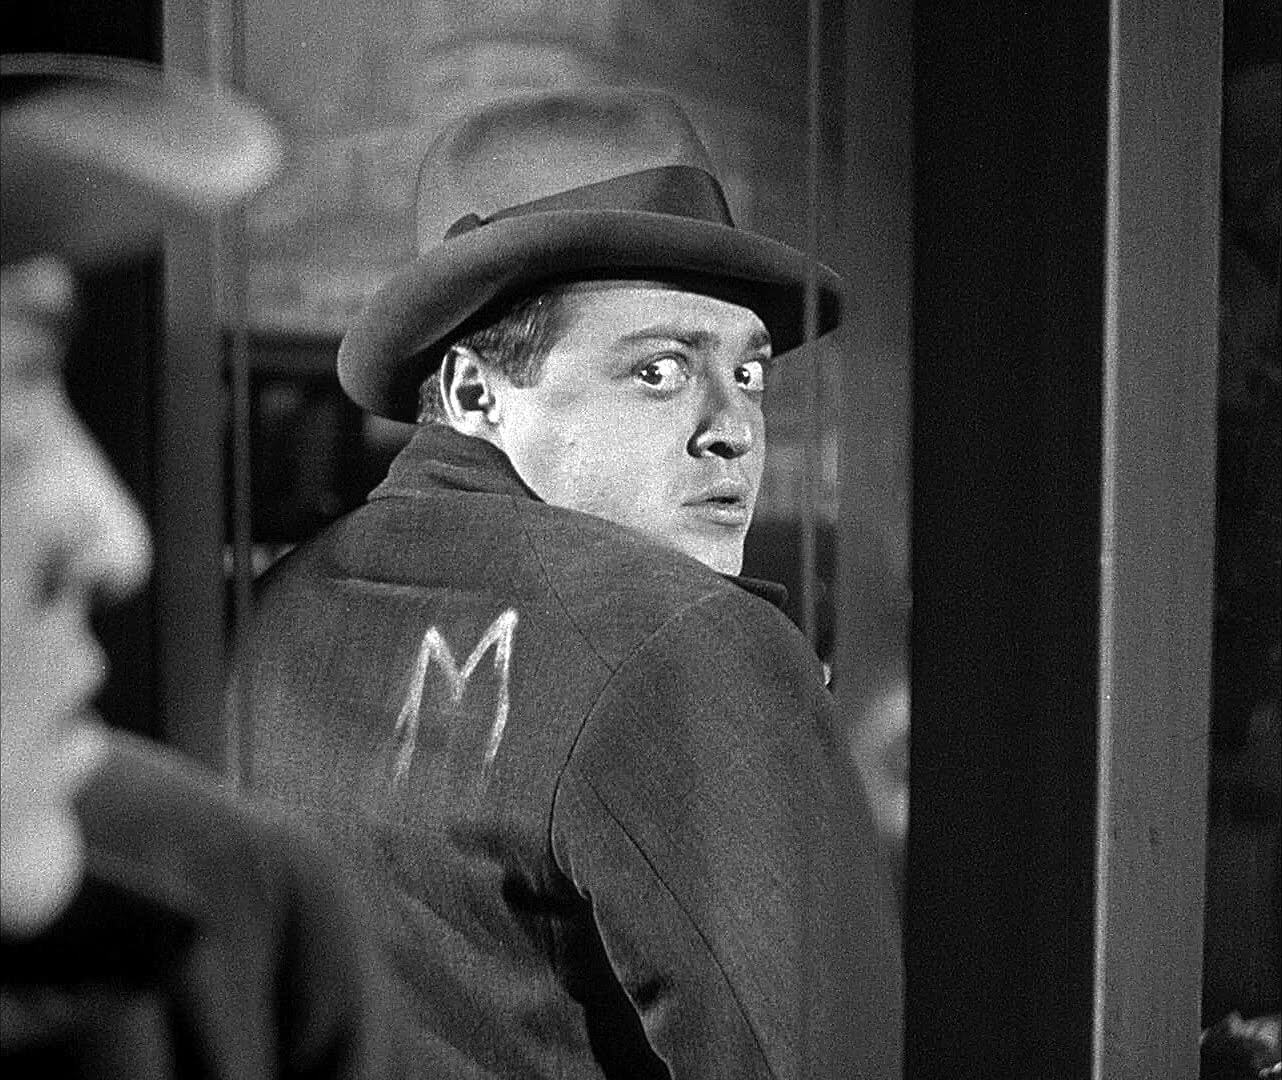 Murder, Manhunt and Justice. Looking Back at Fritz Lang's 'M' - mxdwn Movies